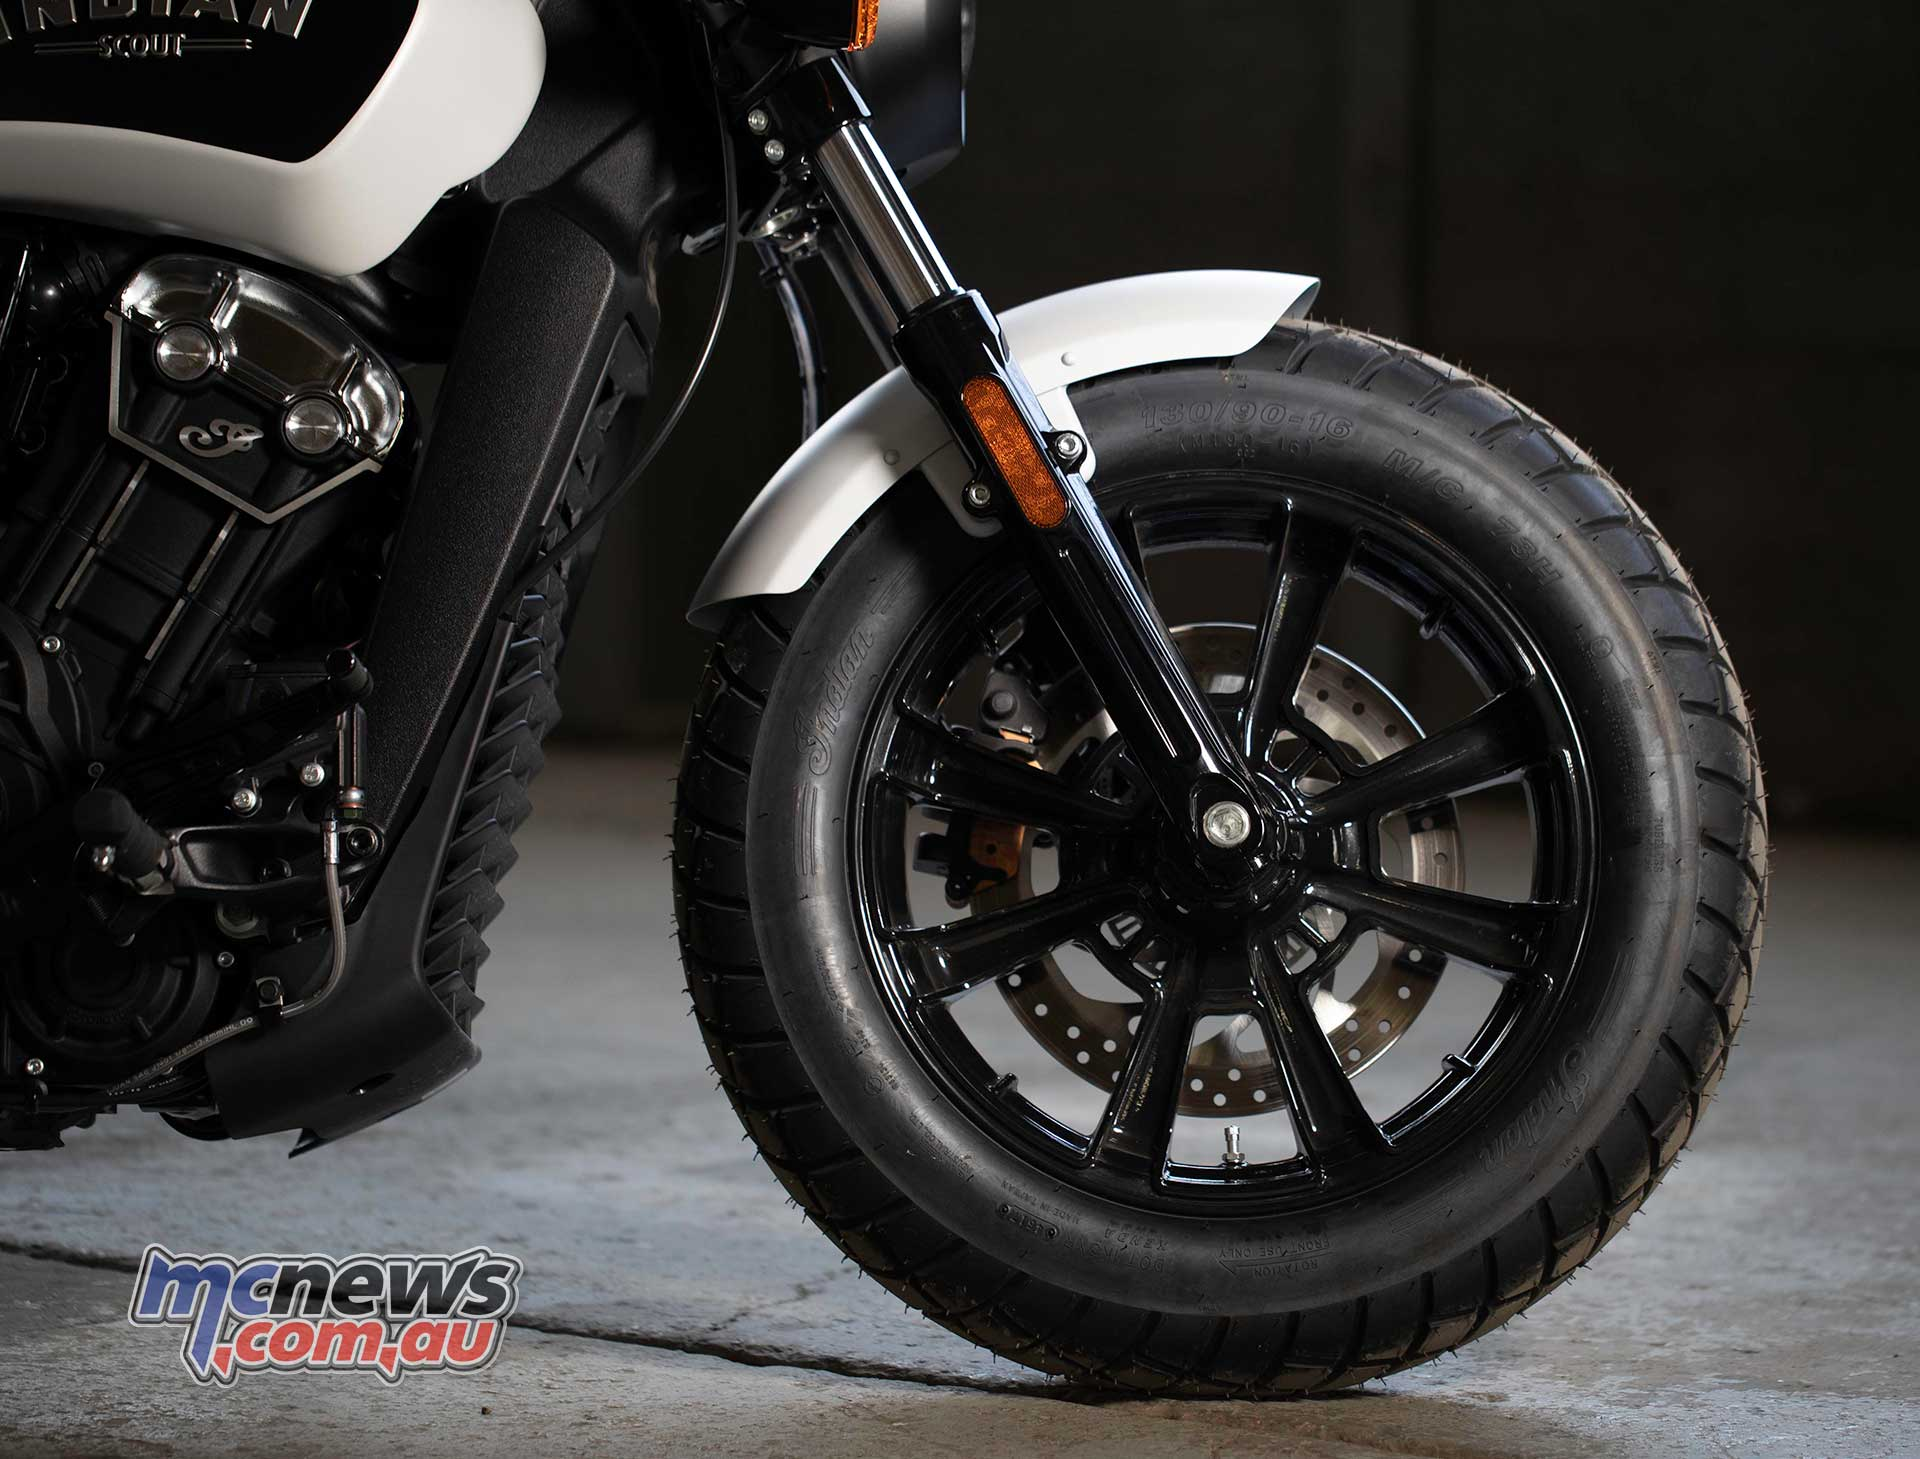 2019 Indian Scout & Bobber due late this year | MCNews com au